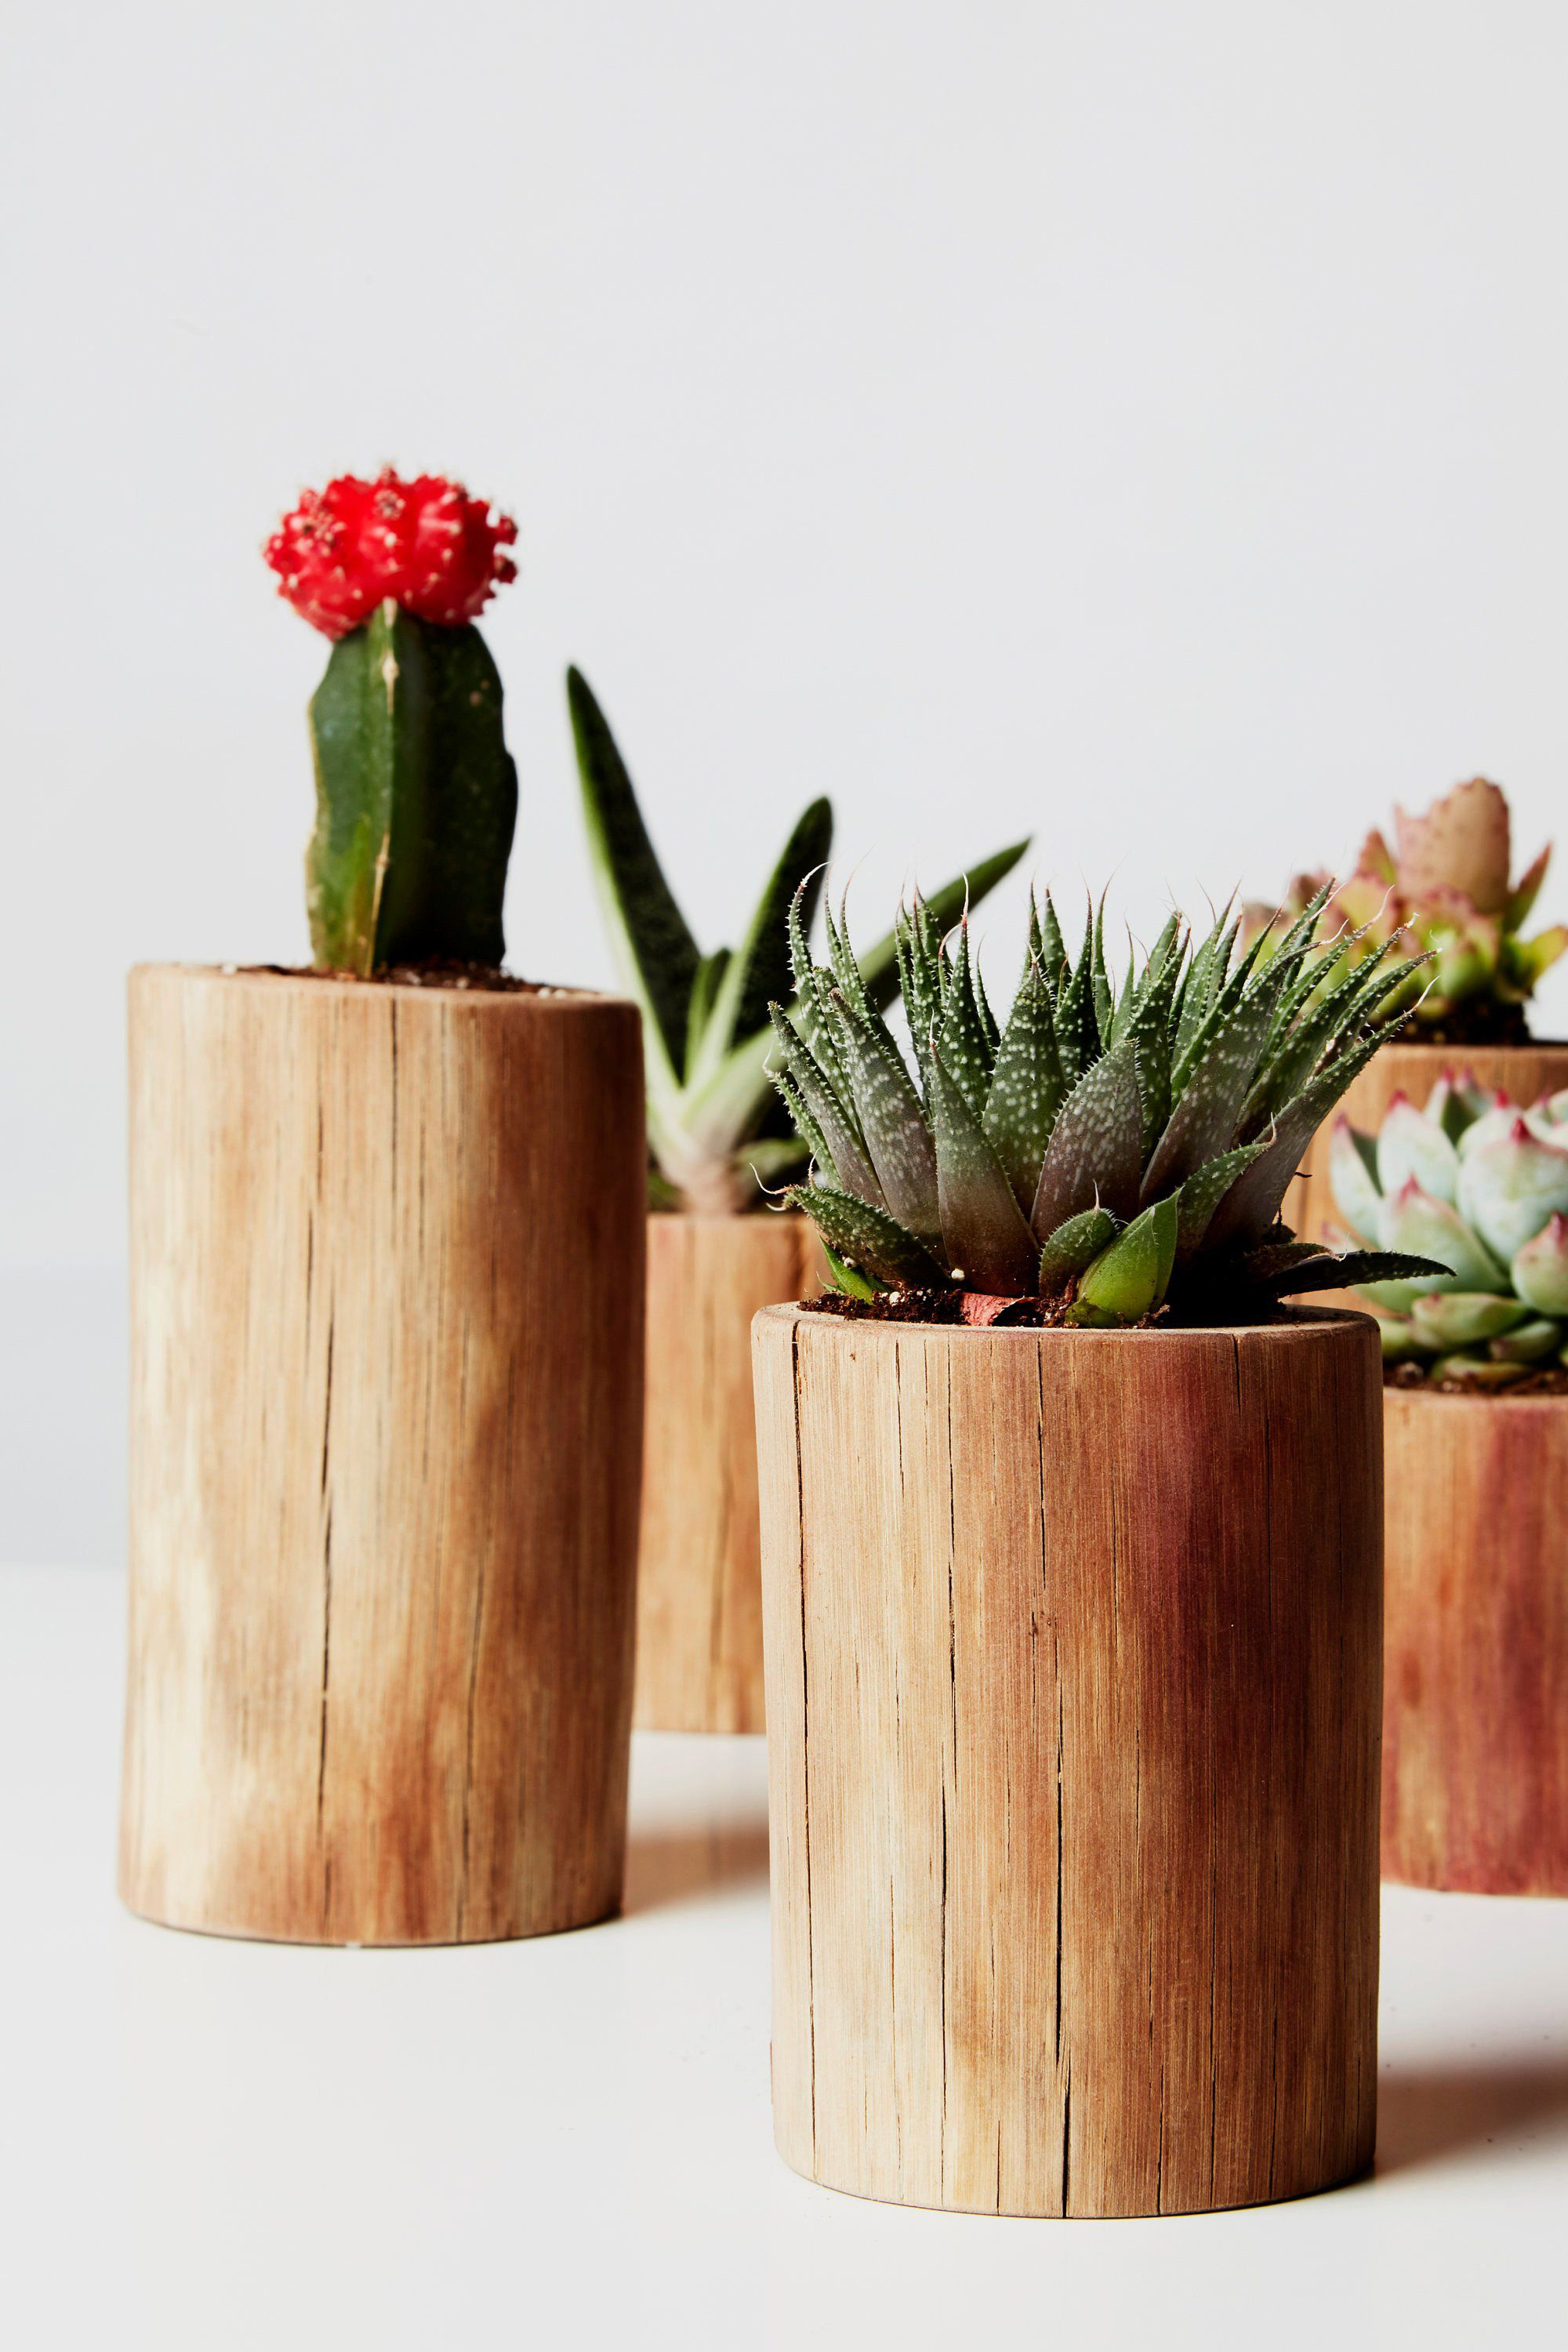 Mini Cactus Planter Set Succulent Planter Rustic Plant Etsy In 2020 Plant Decor Cactus Plant Pots Small Cactus Plants